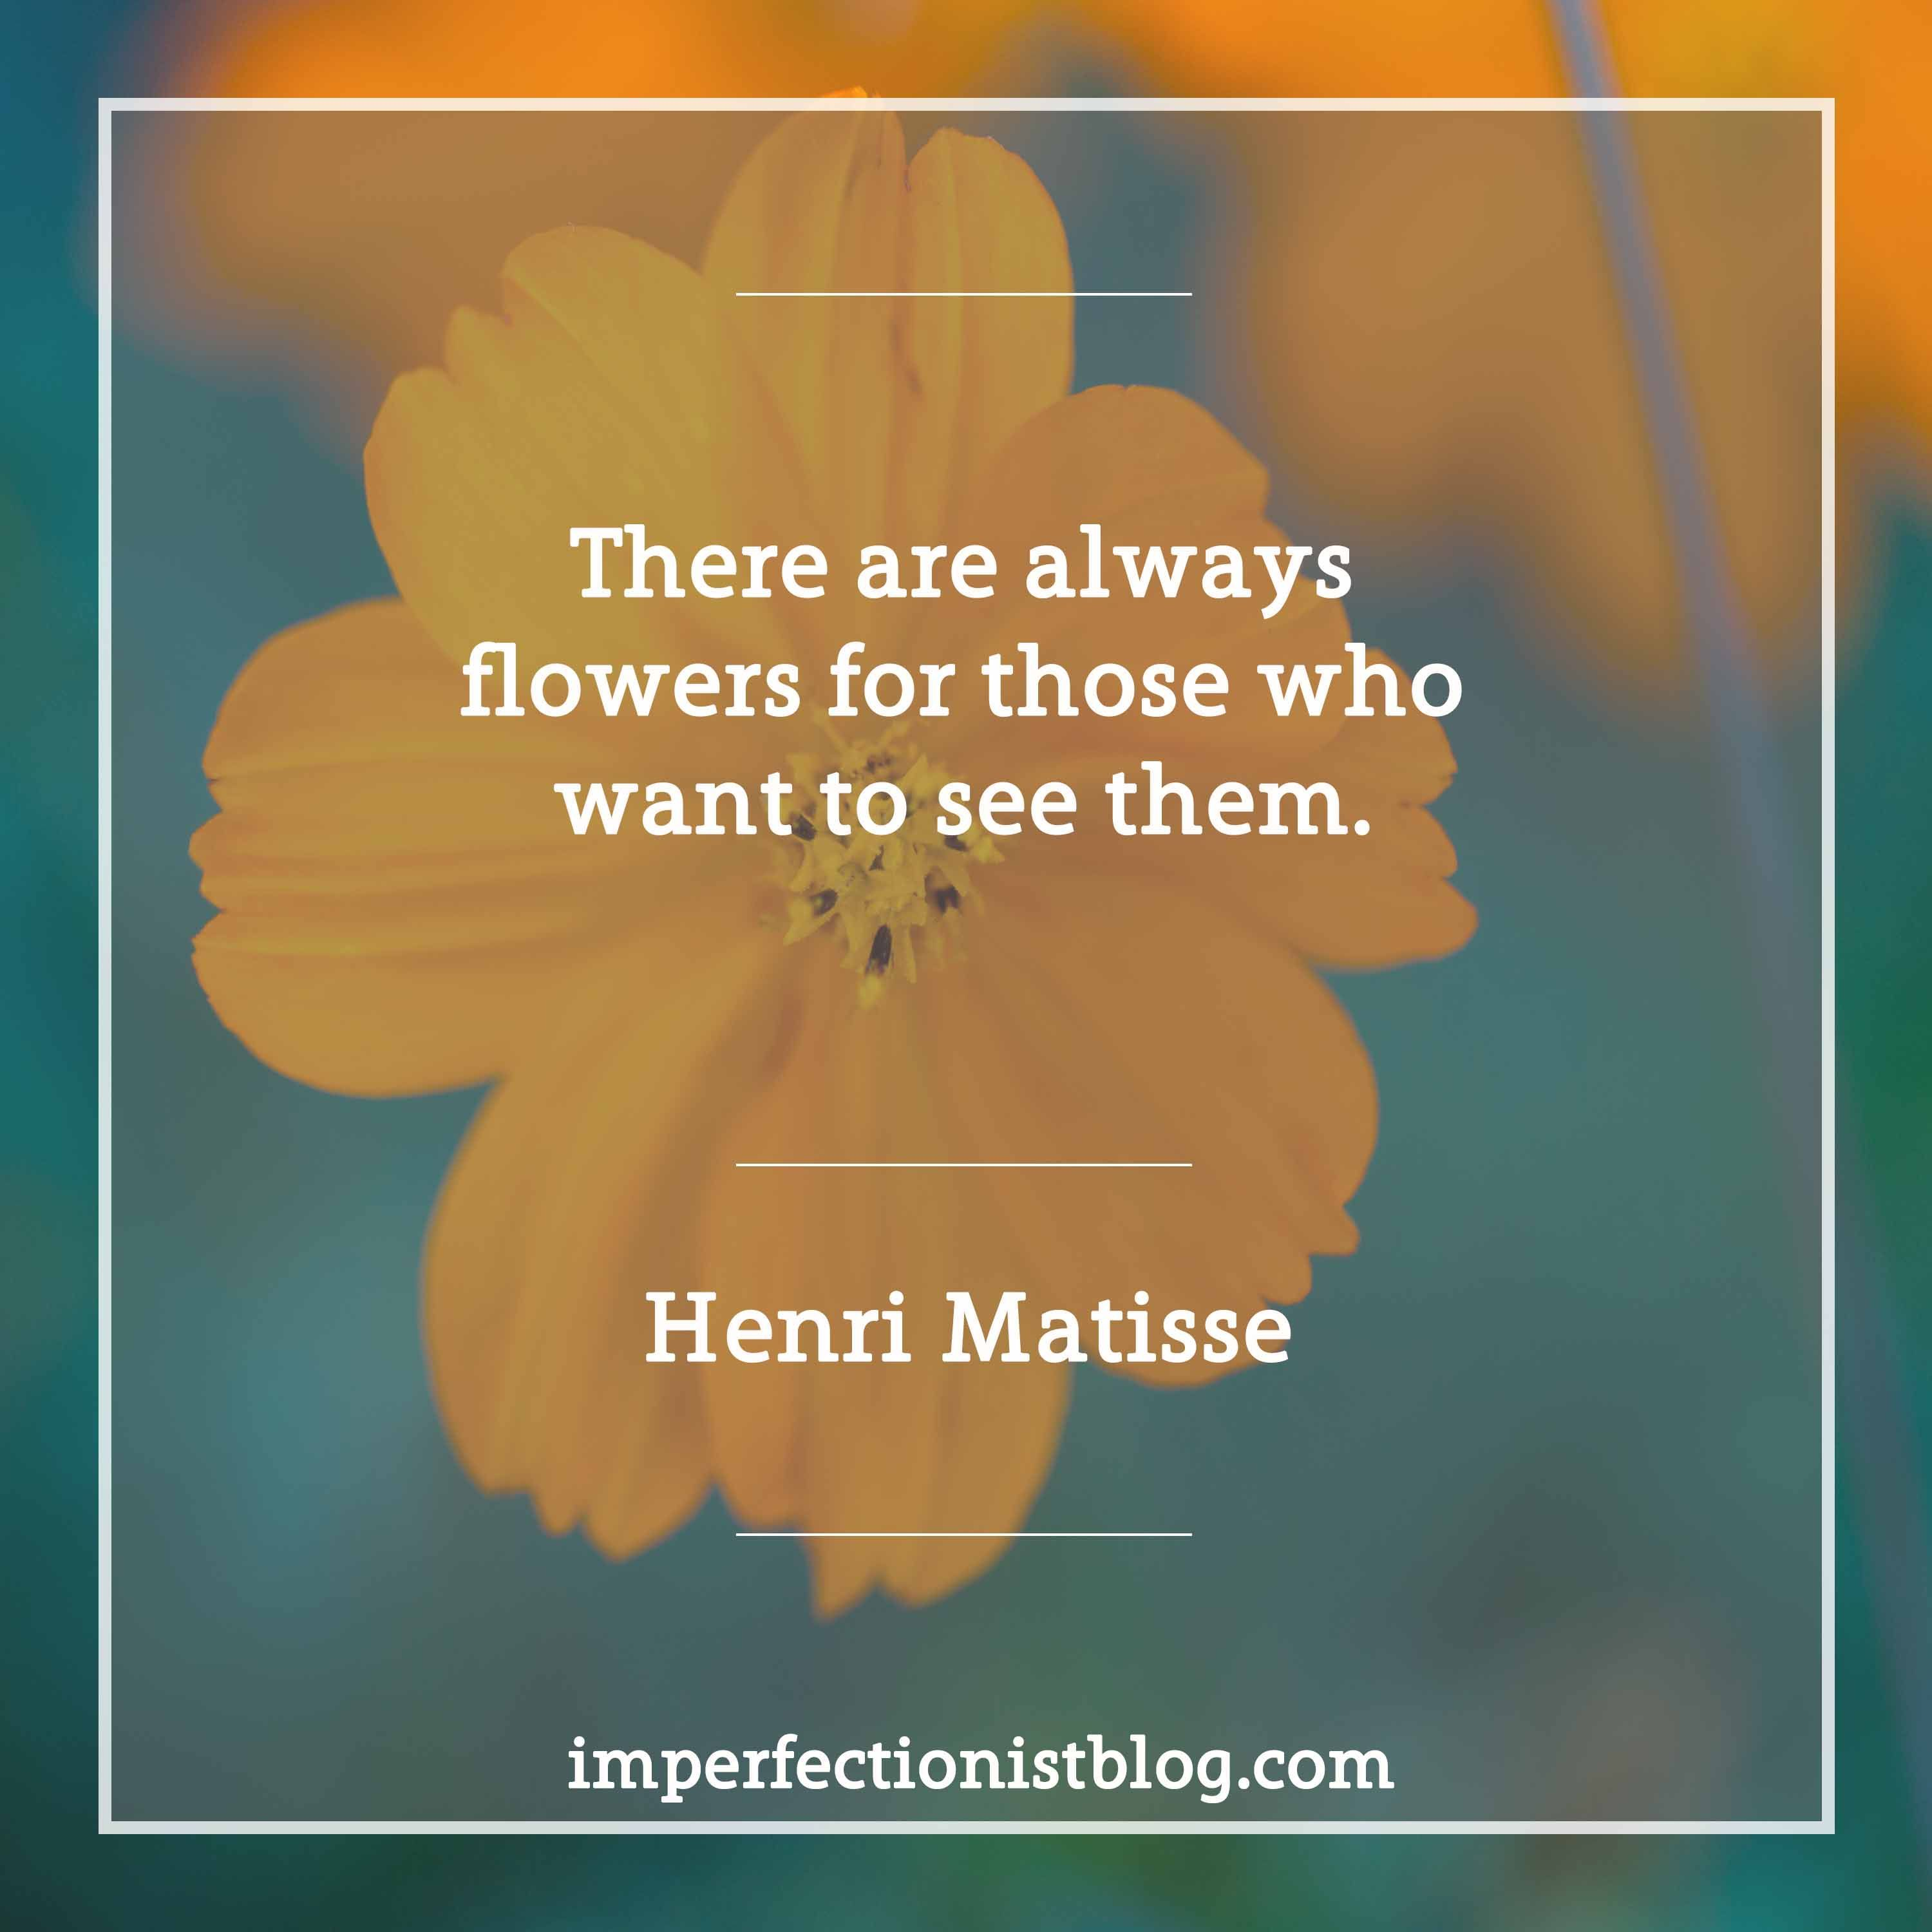 """Henri Matisse, born on this day in 1869, on presence: """"There are always flowers for those who want to see them."""" #matisse #presence bytes.imperfectionistblog.com"""